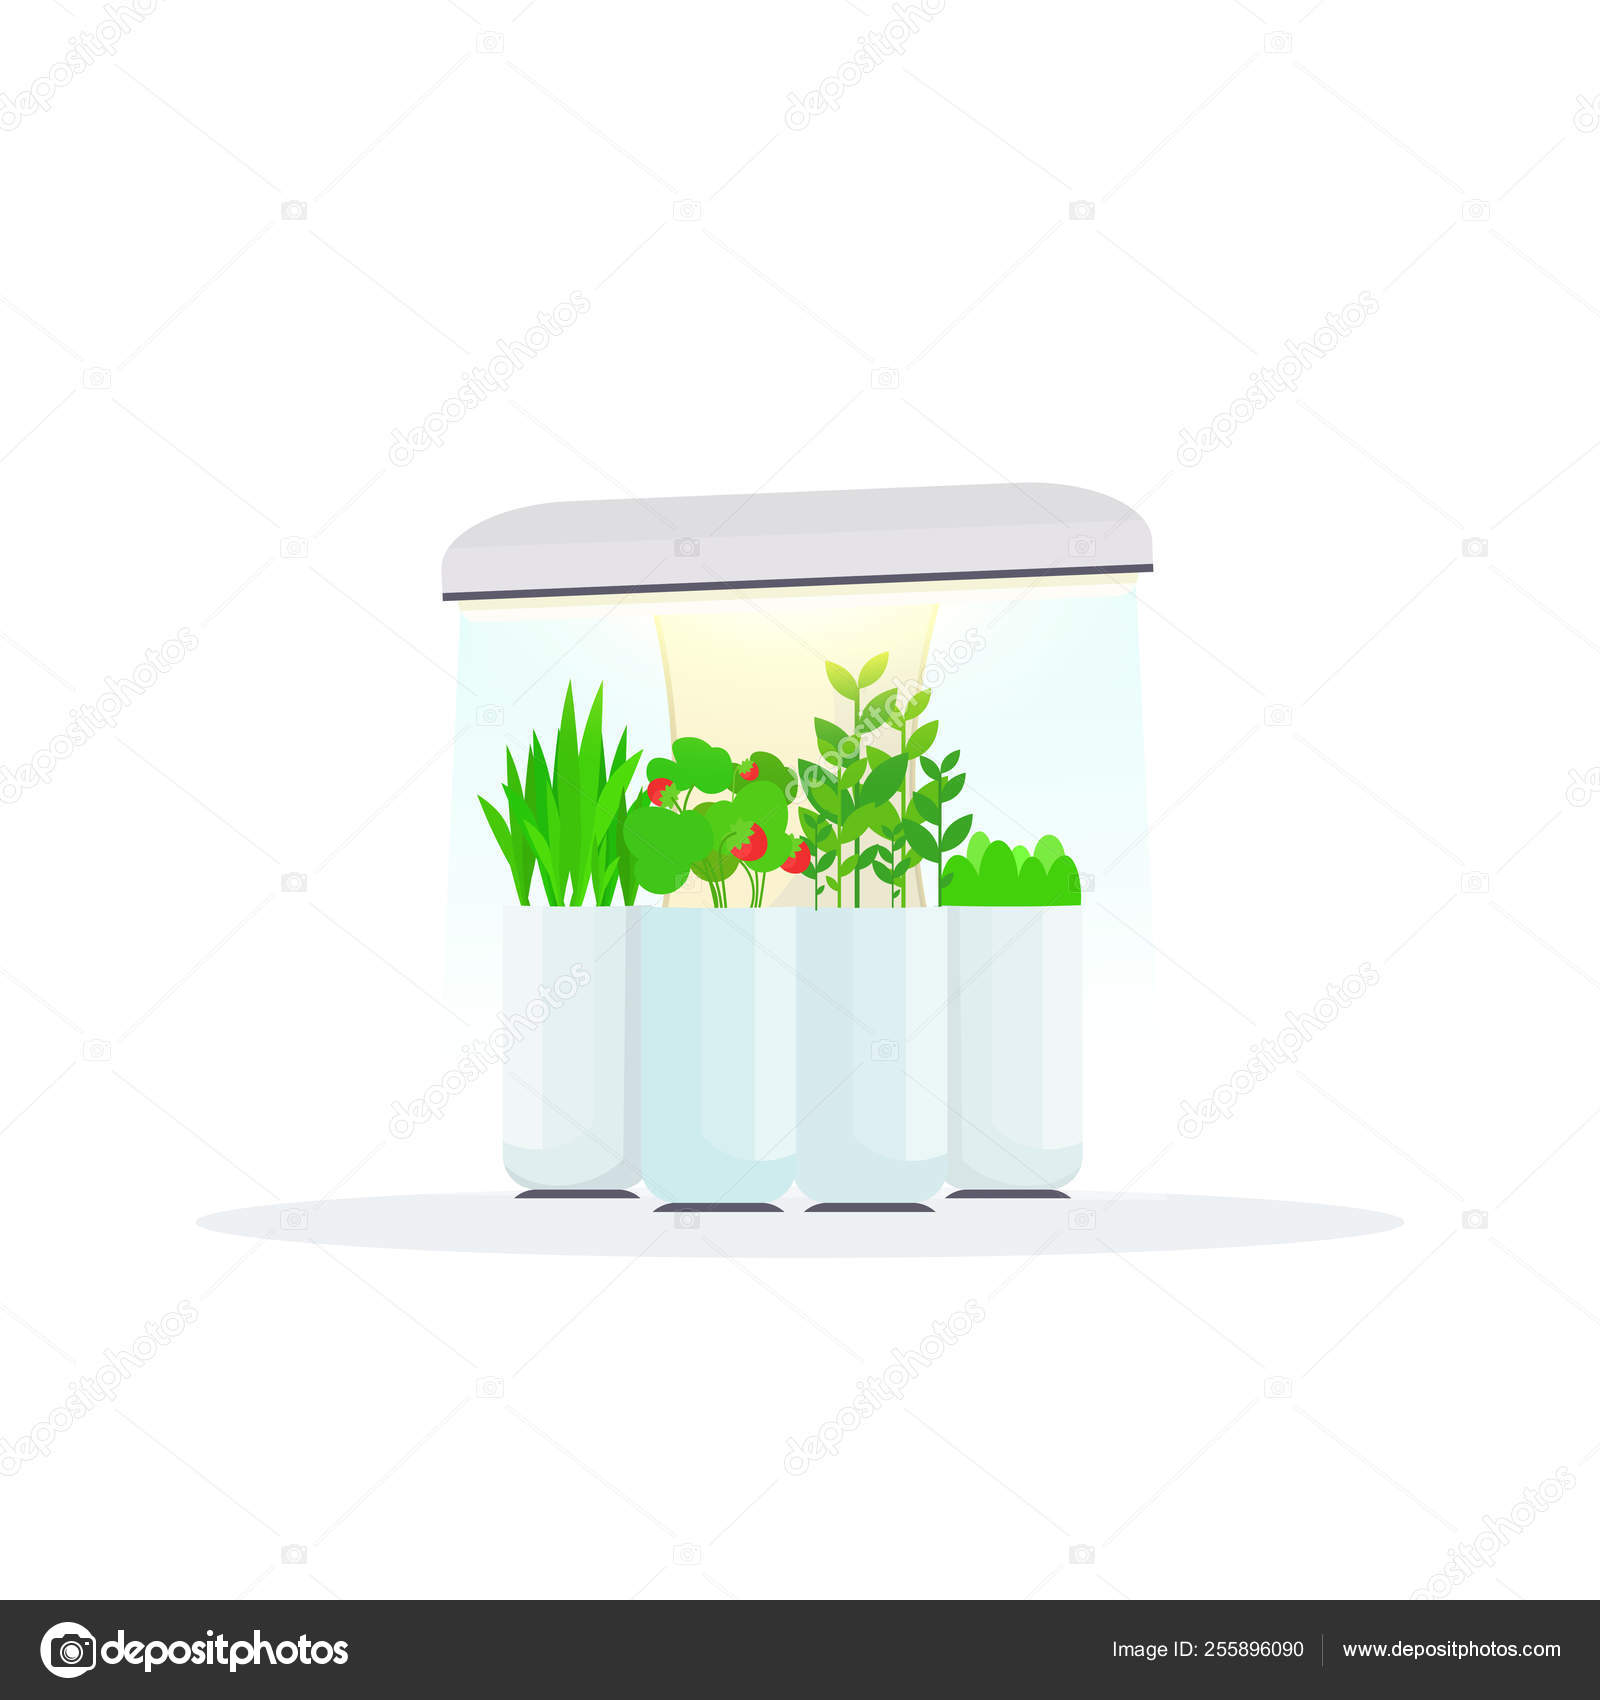 Modern Indoor Fruits And Vegetables Garden Digital Greenhouse Electronic Terrarium Farm Glass Container Eco Farming House Plants Growing Concept Flat White Background Stock Vector C Mast3r 255896090